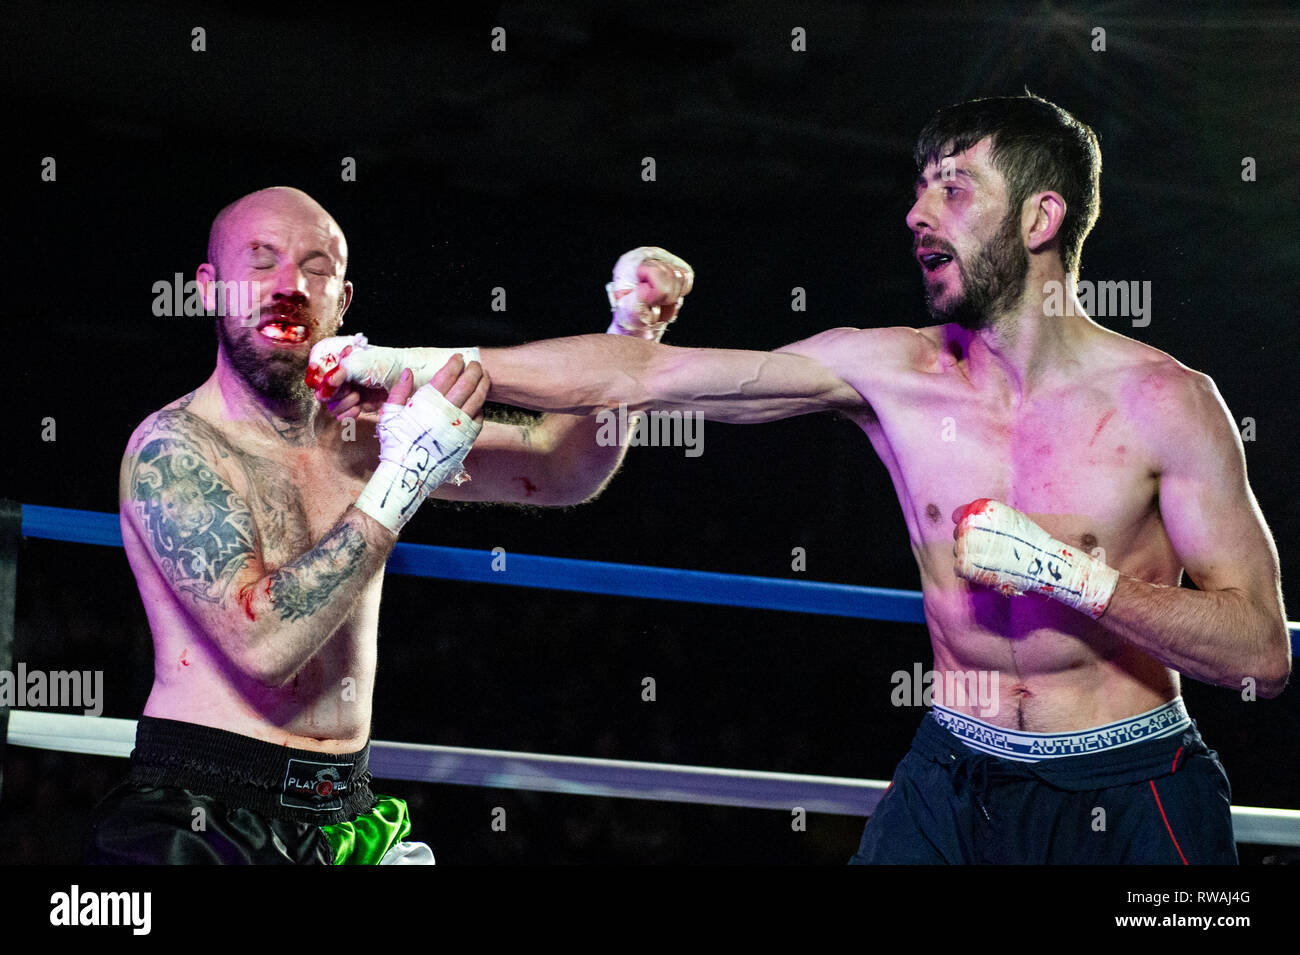 Bare Knuckle Boxing High Resolution Stock Photography And Images Alamy